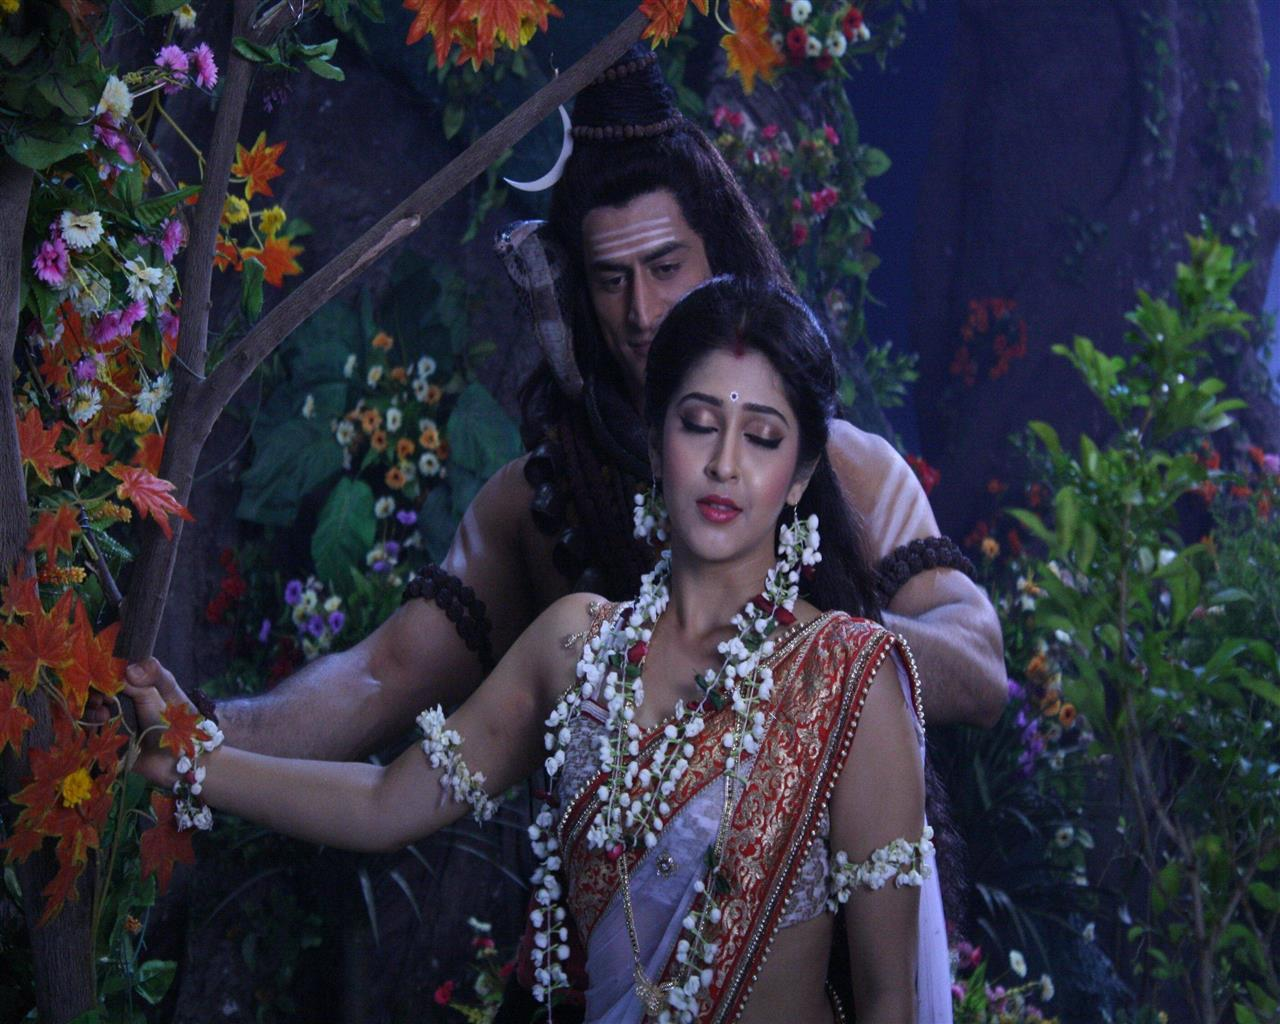 1280x1024 Lord Shiva and Parvati in Devon Ke Dev Mahadev Hindi TV Serial Wallpapers